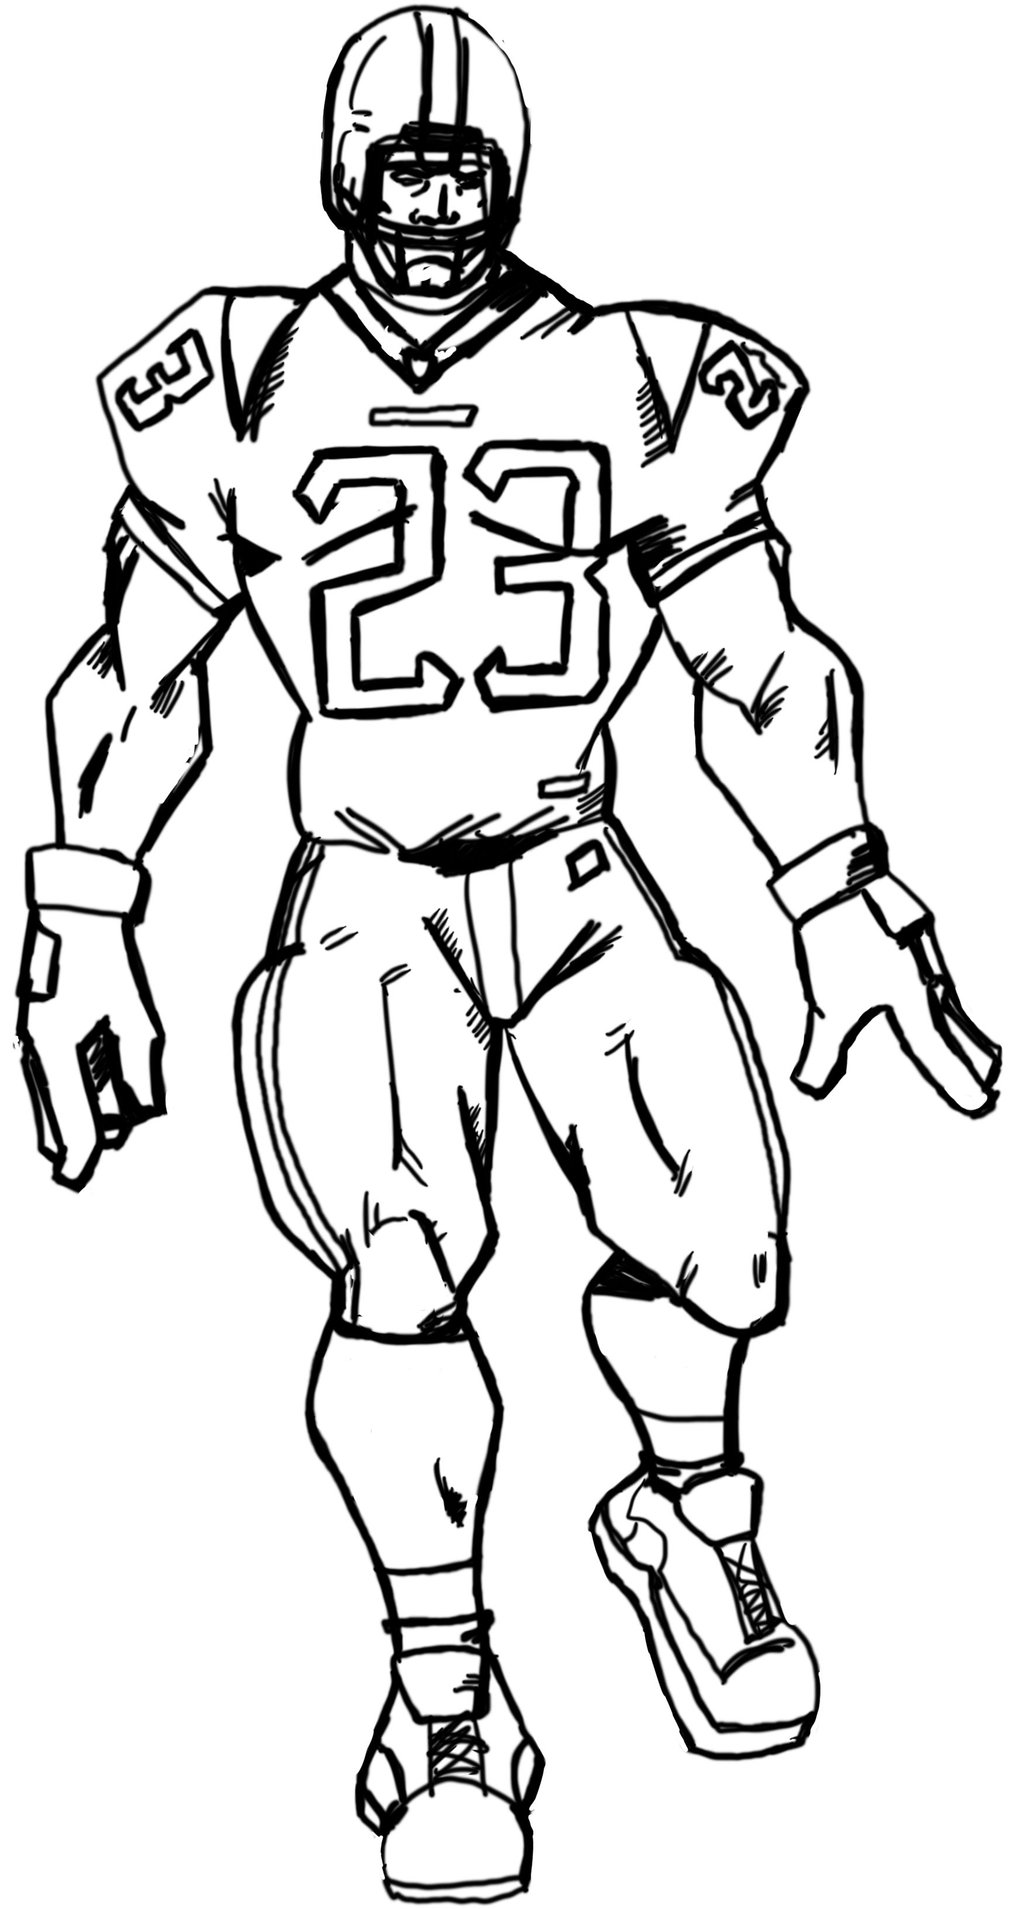 Line Drawing Football : Line drawings of football players images